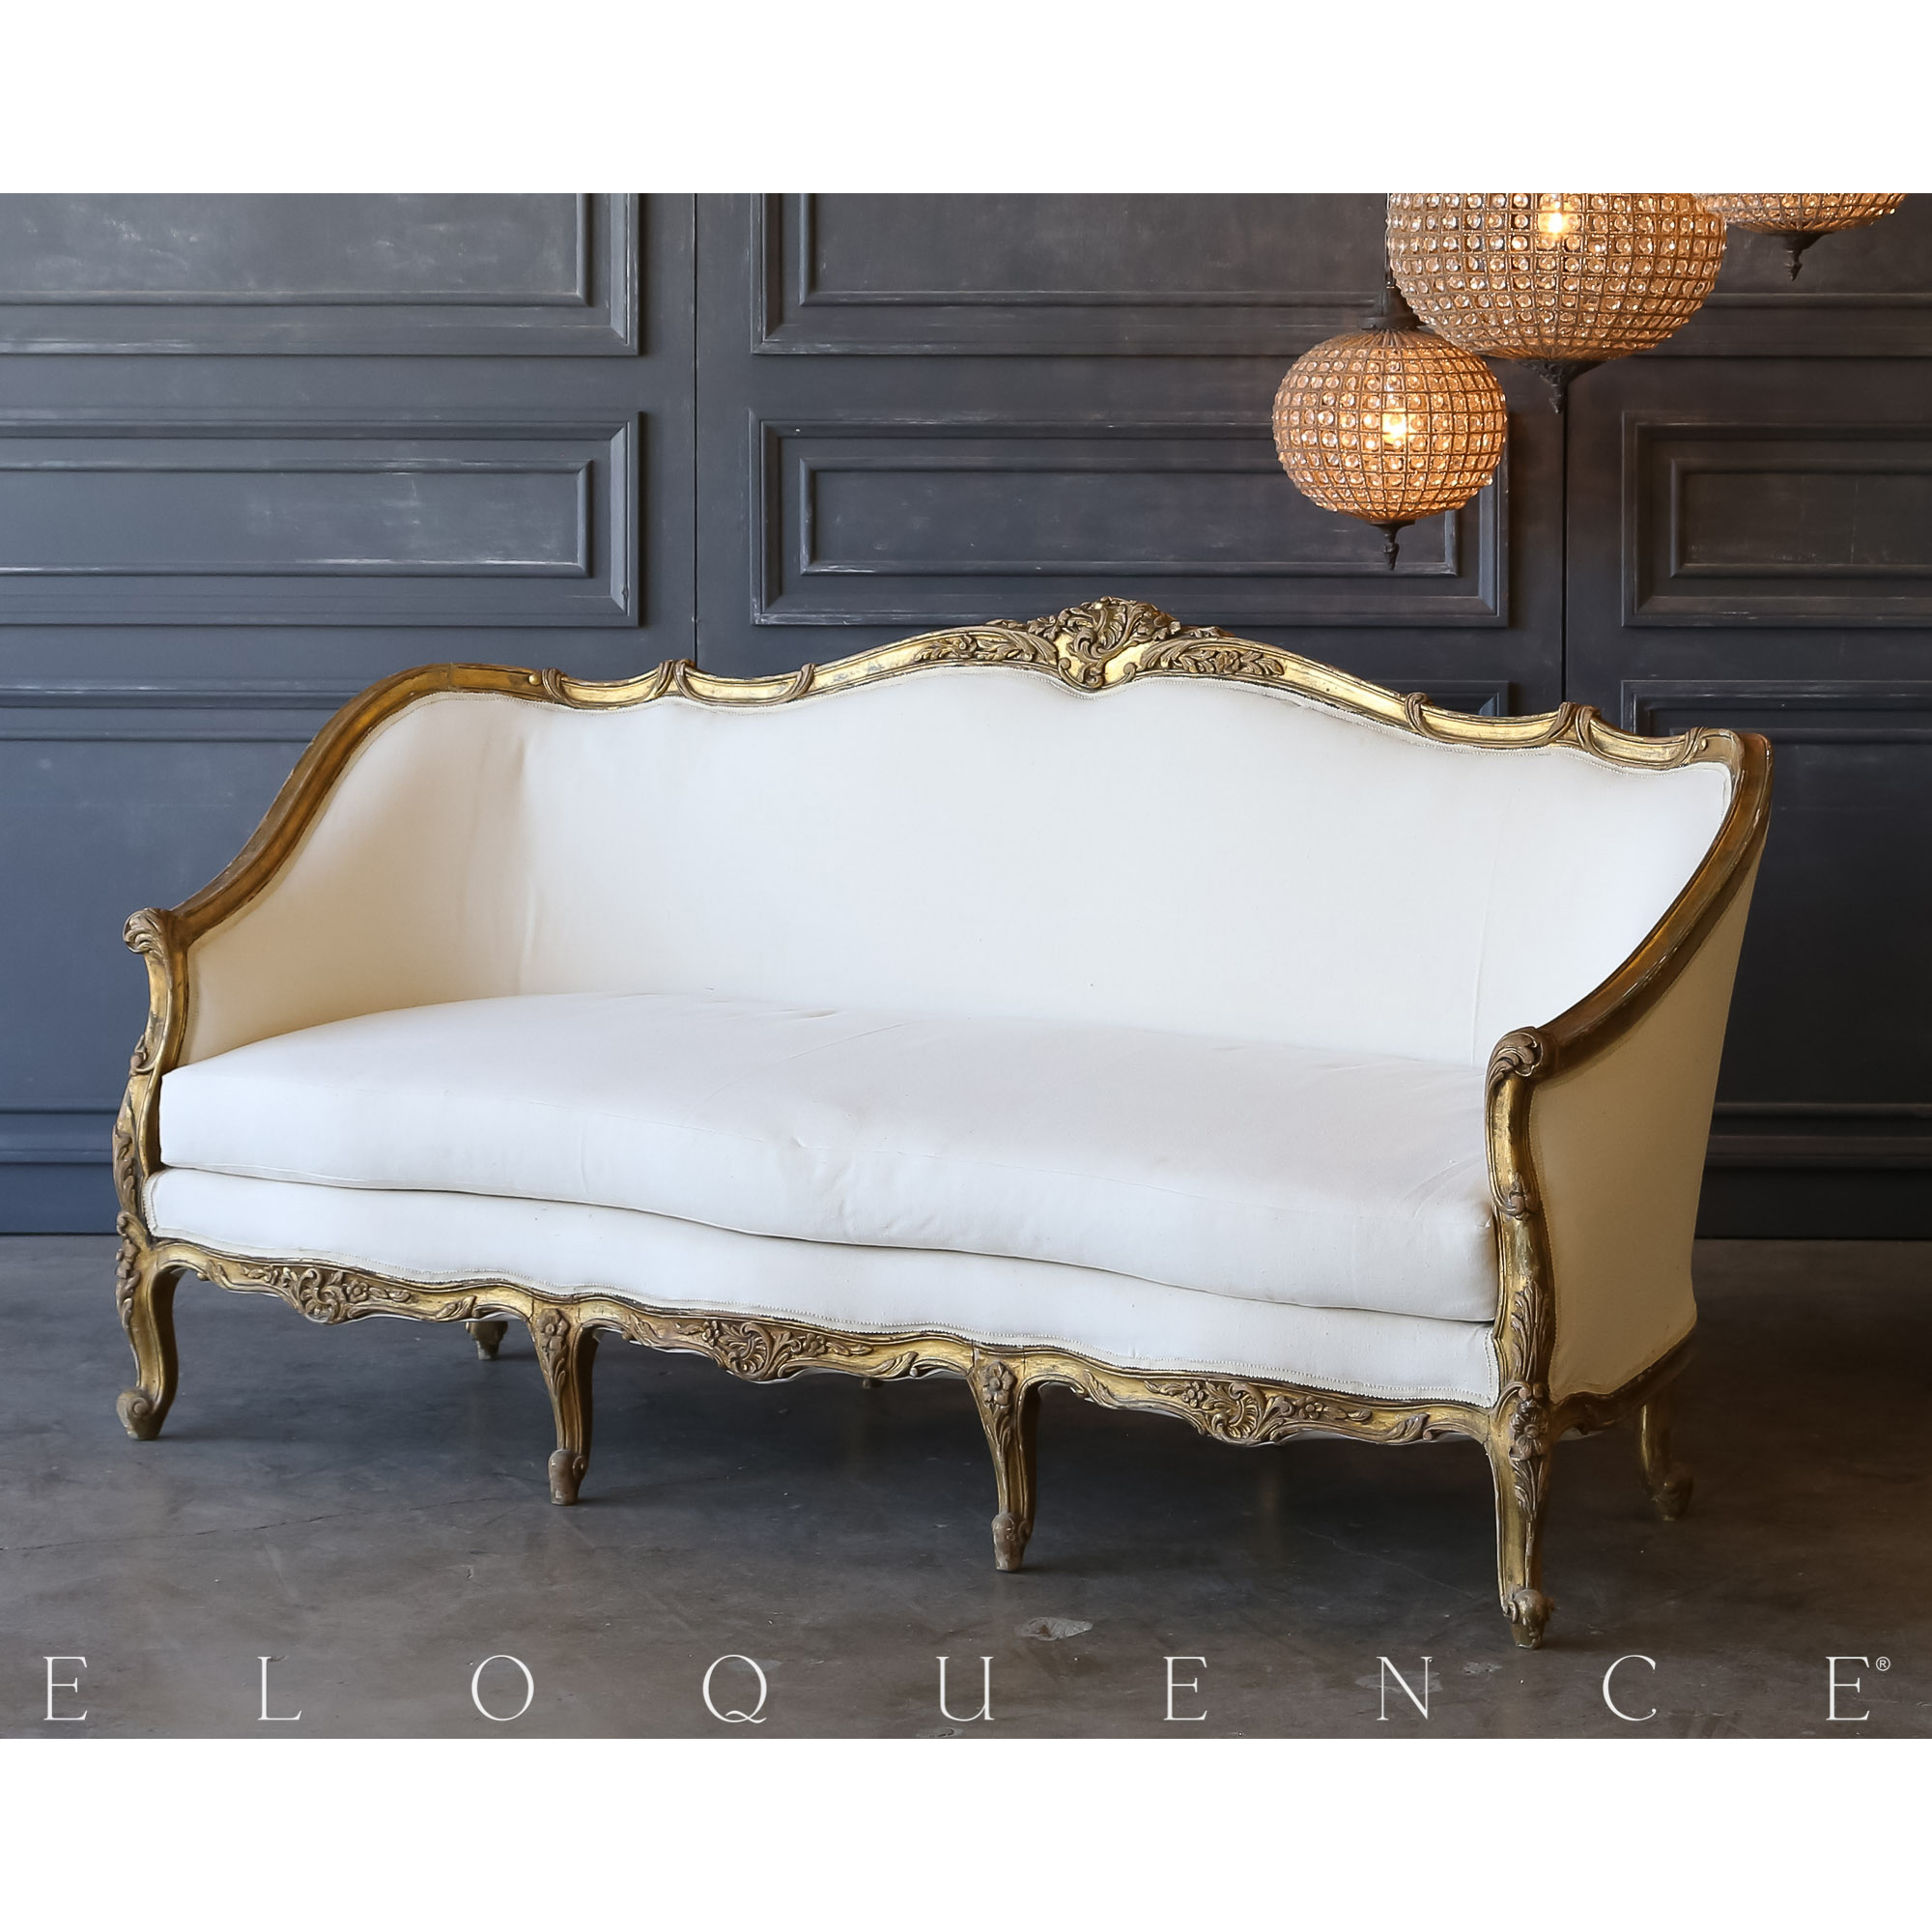 Eloquence® Vintage Distressed Gilt Daybed: 1940